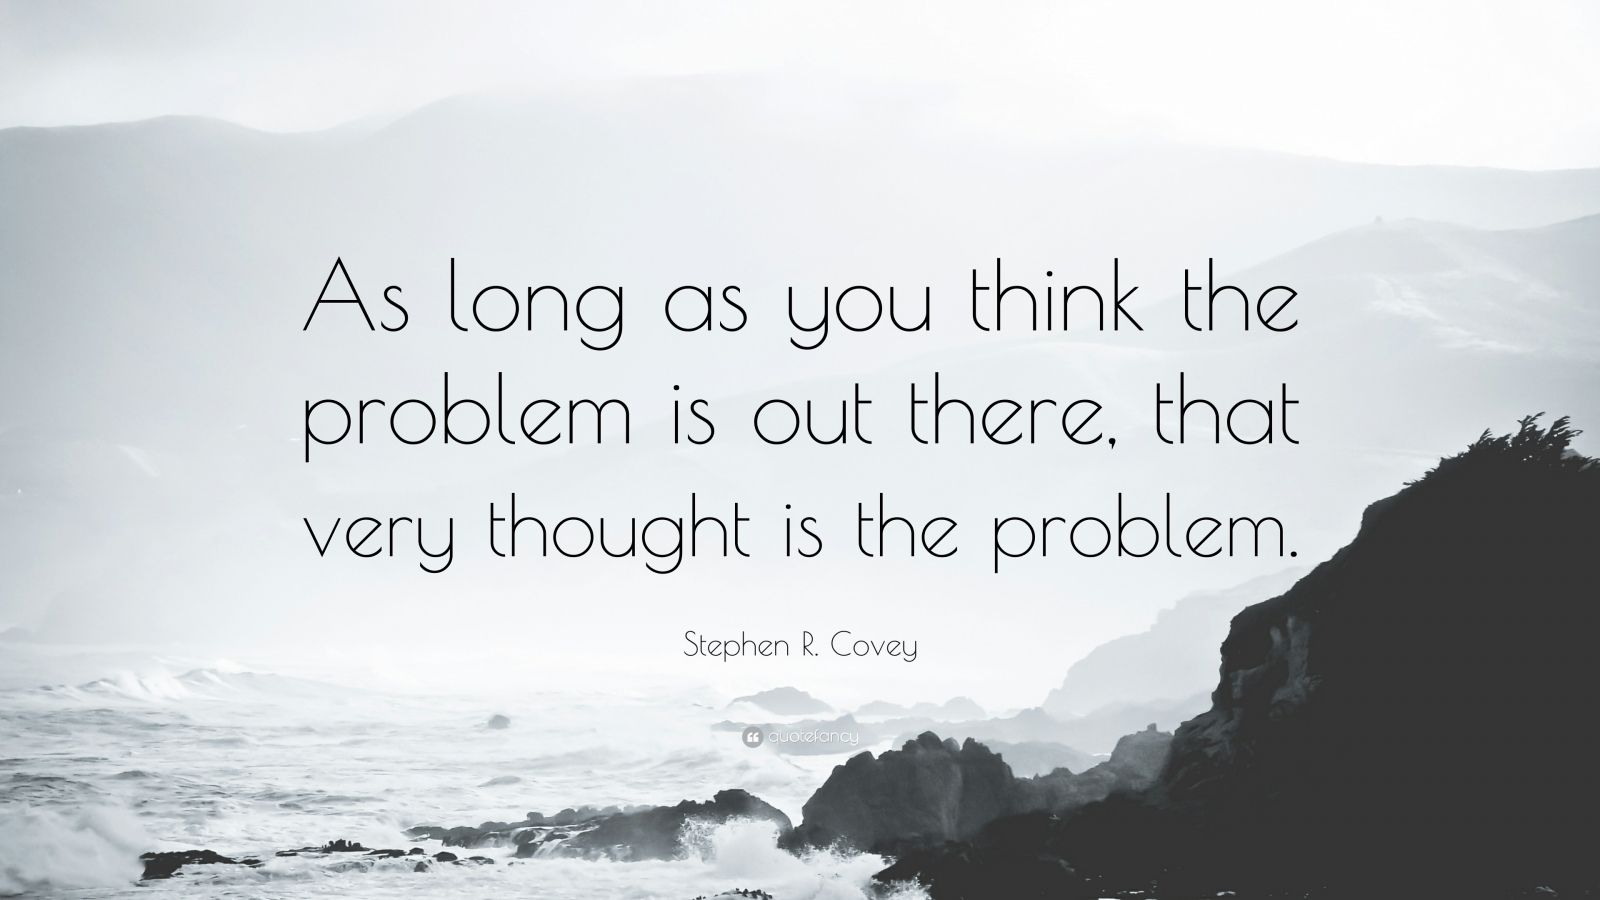 """Stephen R. Covey Quote: """"As long as you think the problem is out there, that very thought is the problem."""""""